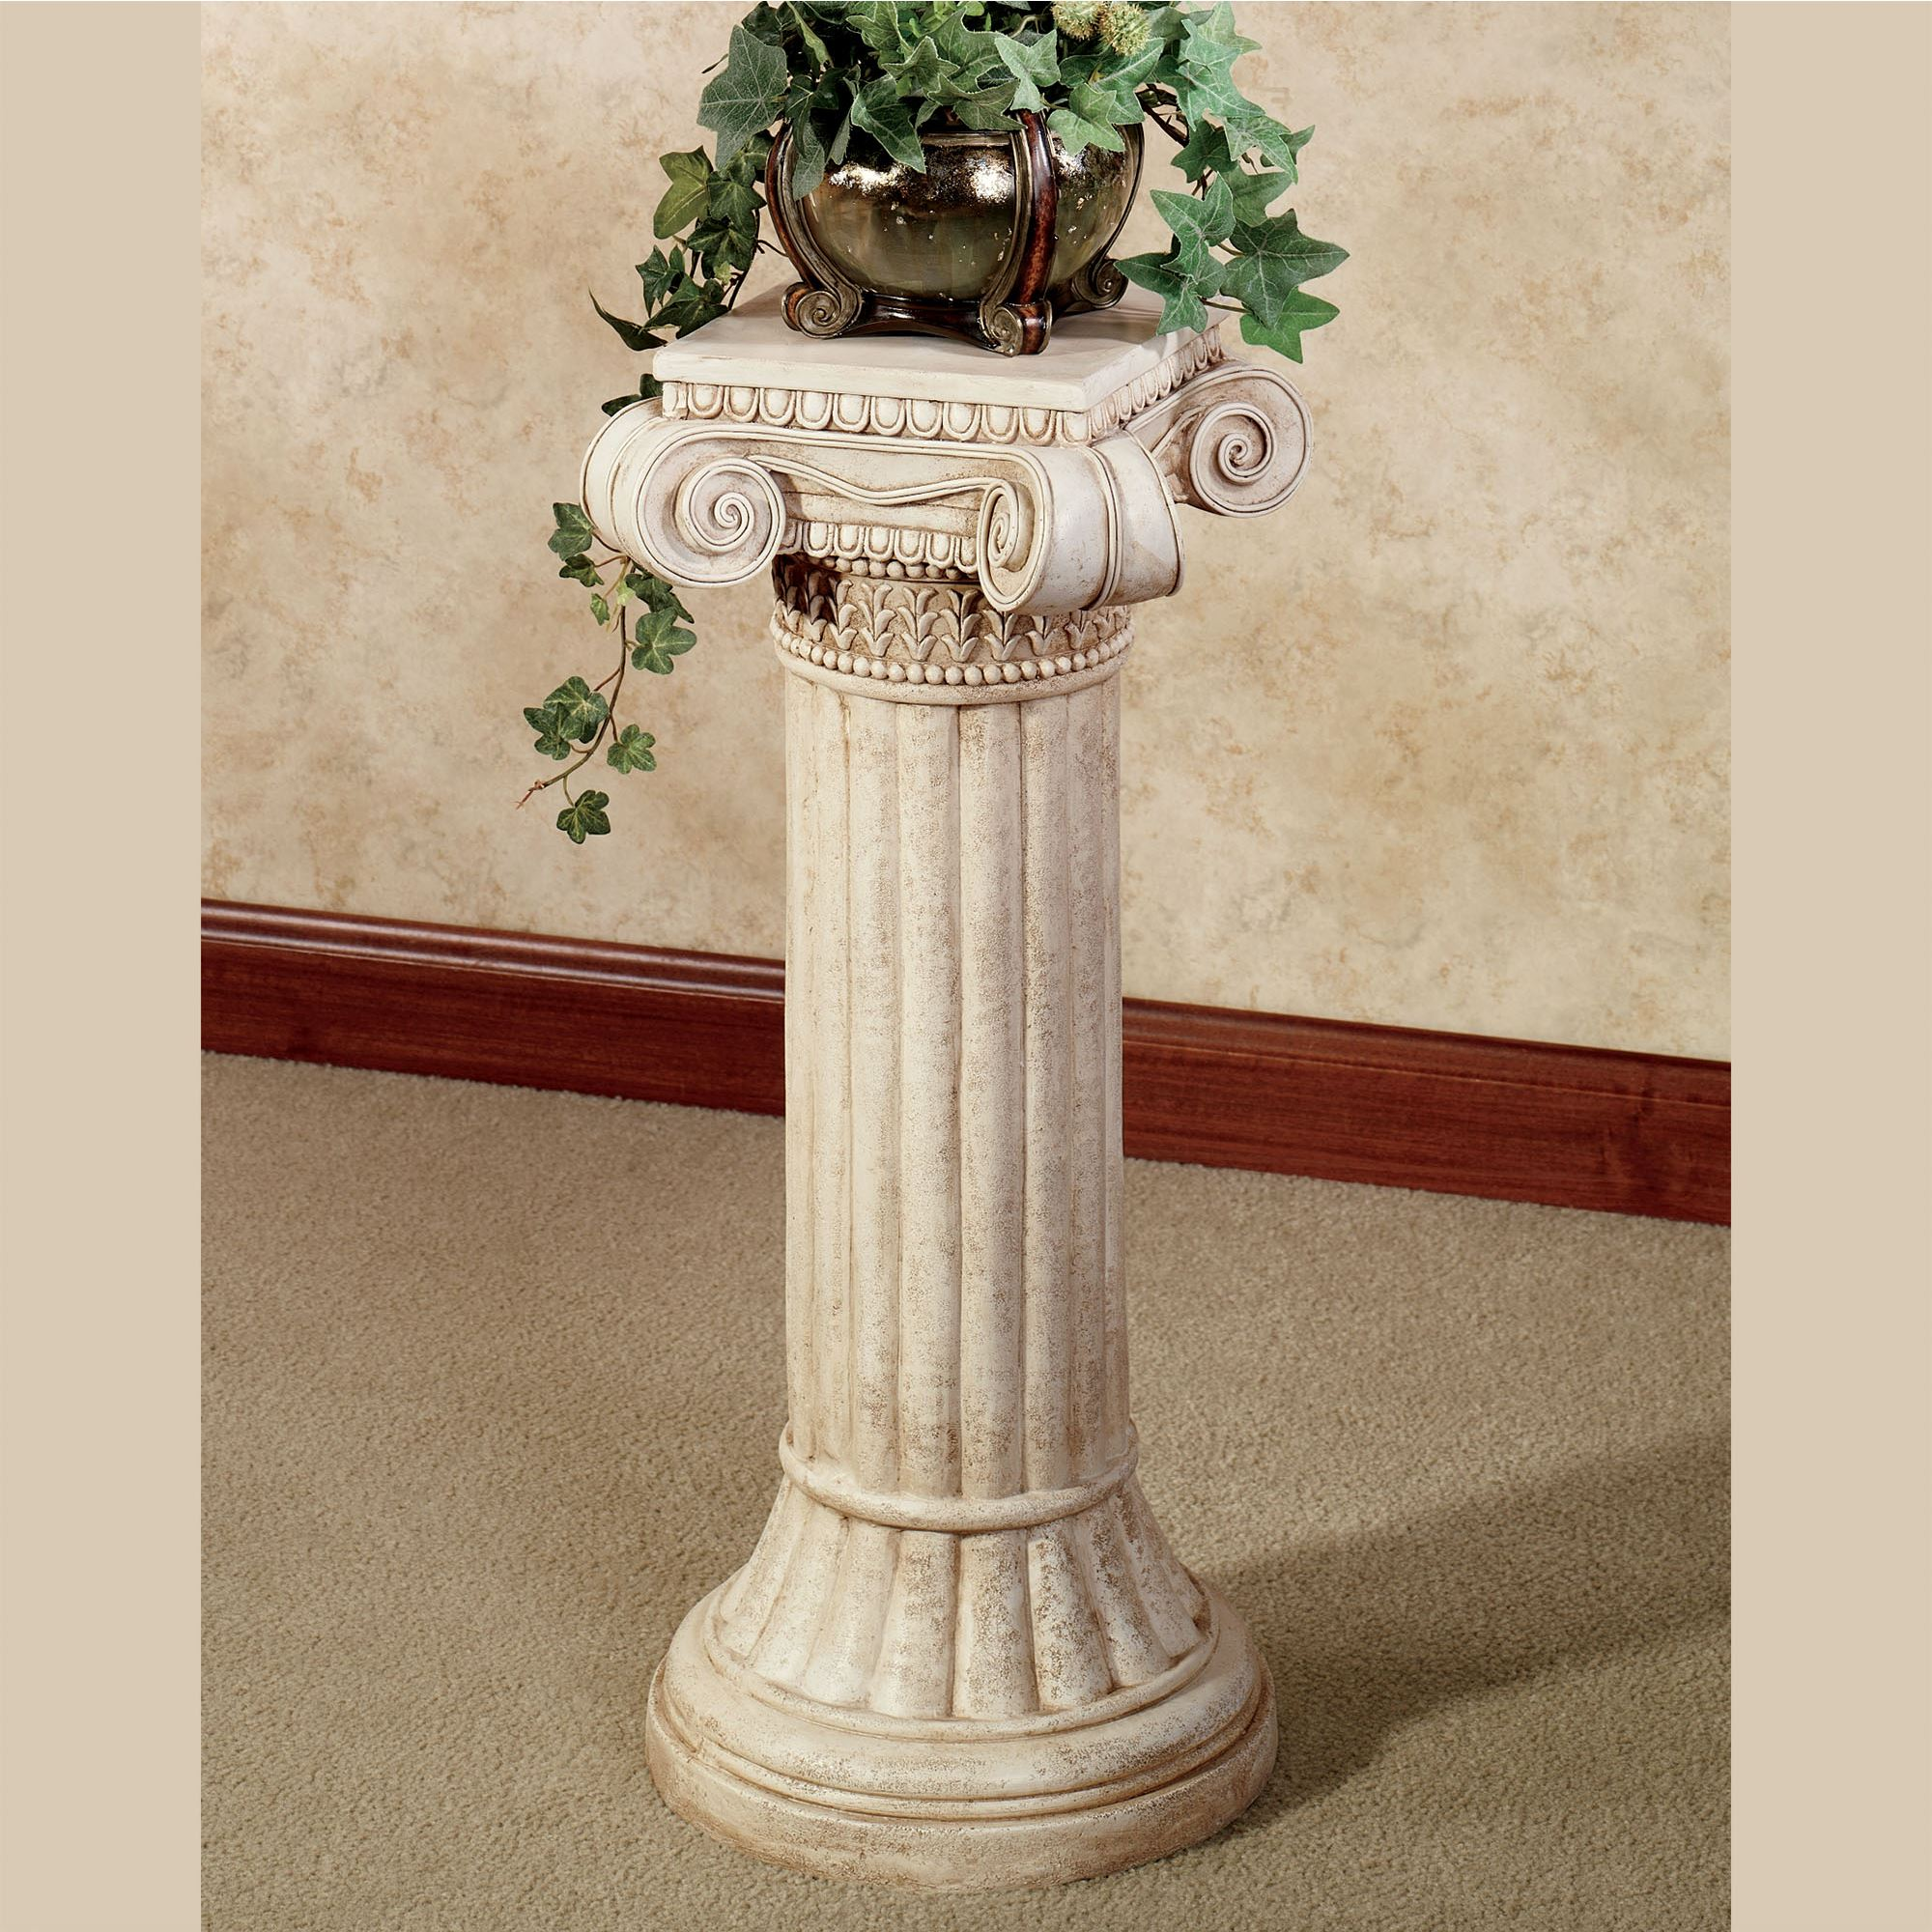 Fabulous Ionic Indoor Outdoor Pedestal Column RZ61